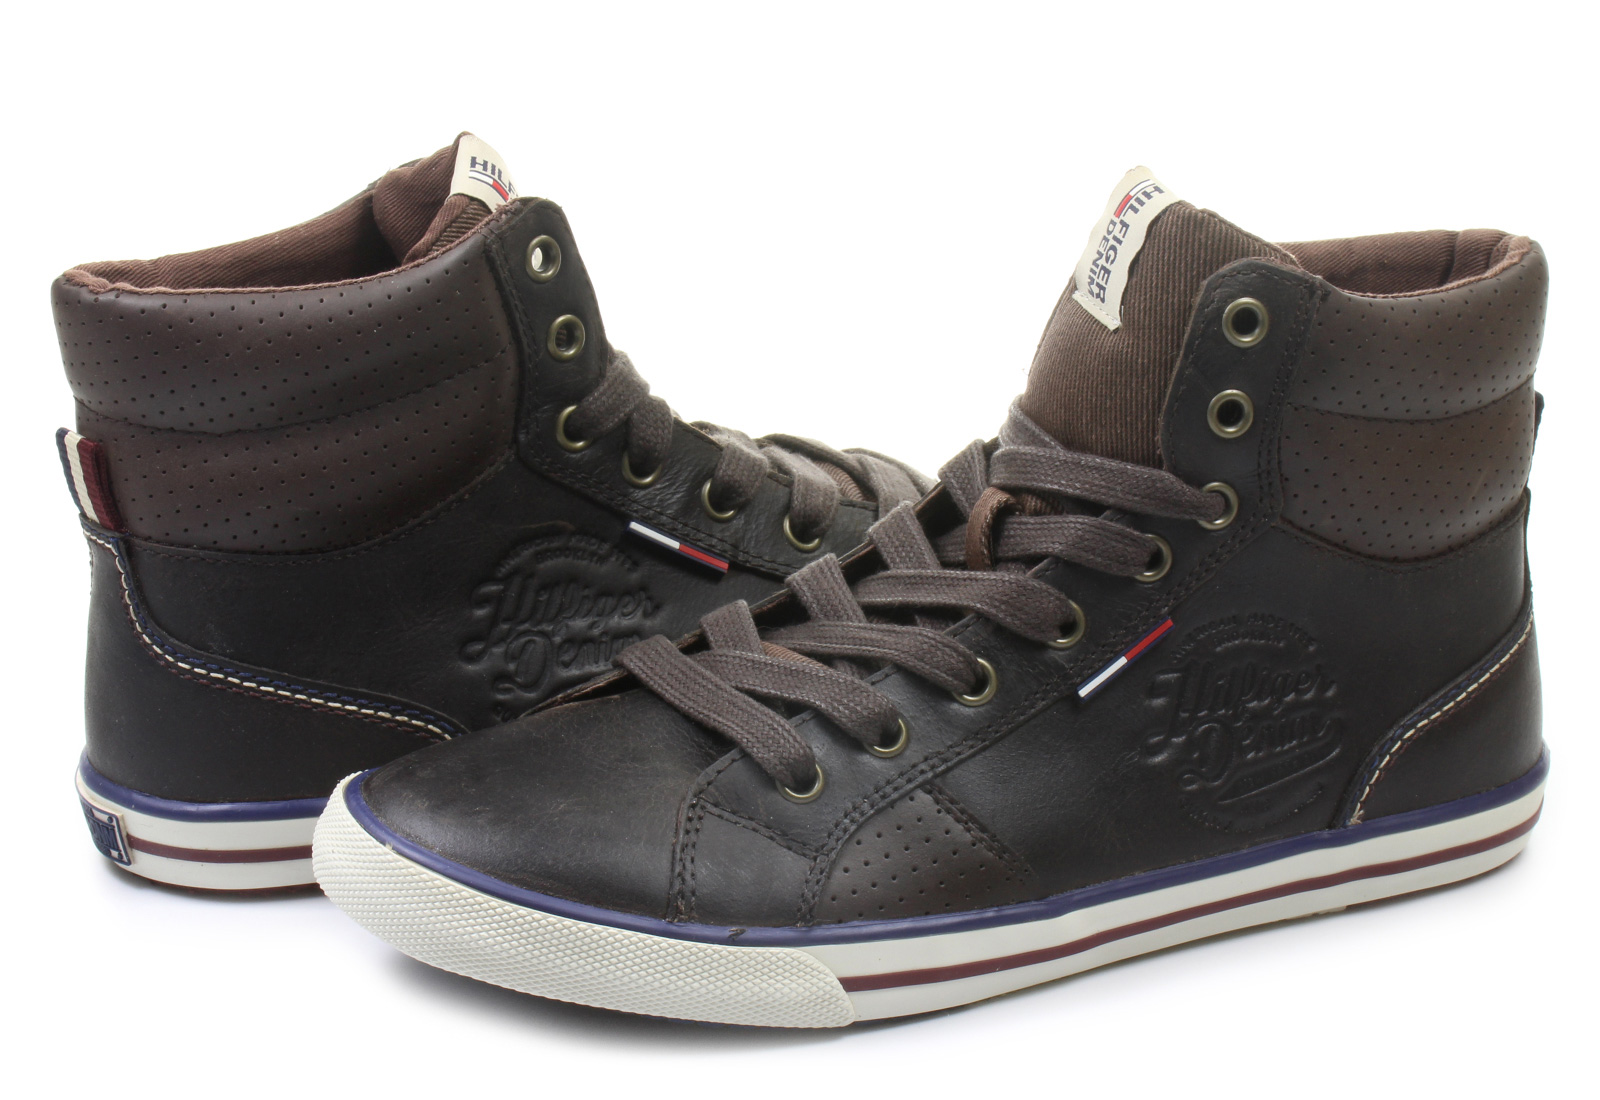 Tommy Hilfiger Shoes - Samson 12a - 14f-7862-211 - Online shop for sneakers, shoes and boots